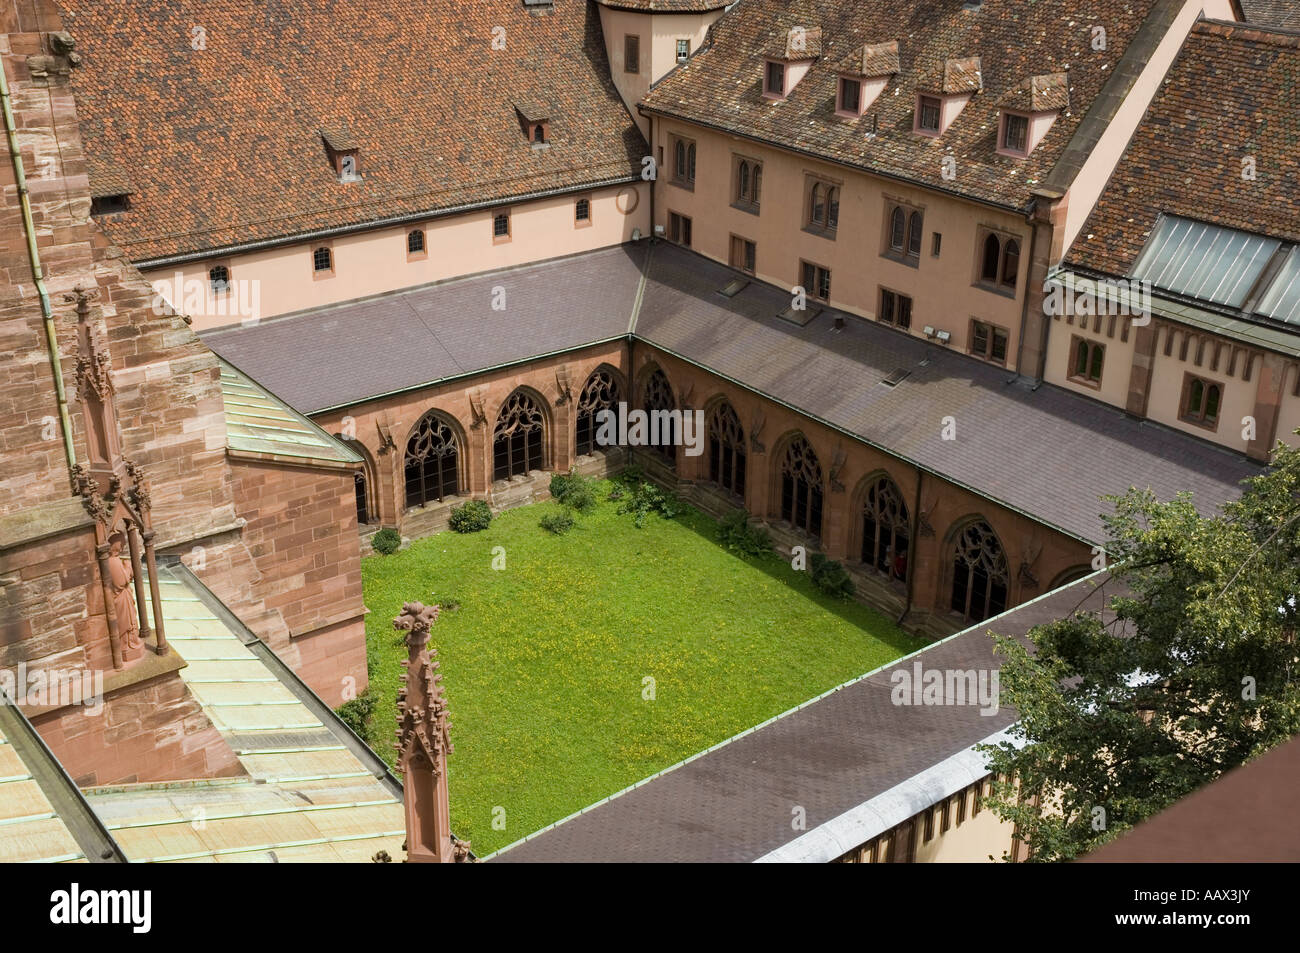 Basel Münster Catherderal Cloisters - Stock Image